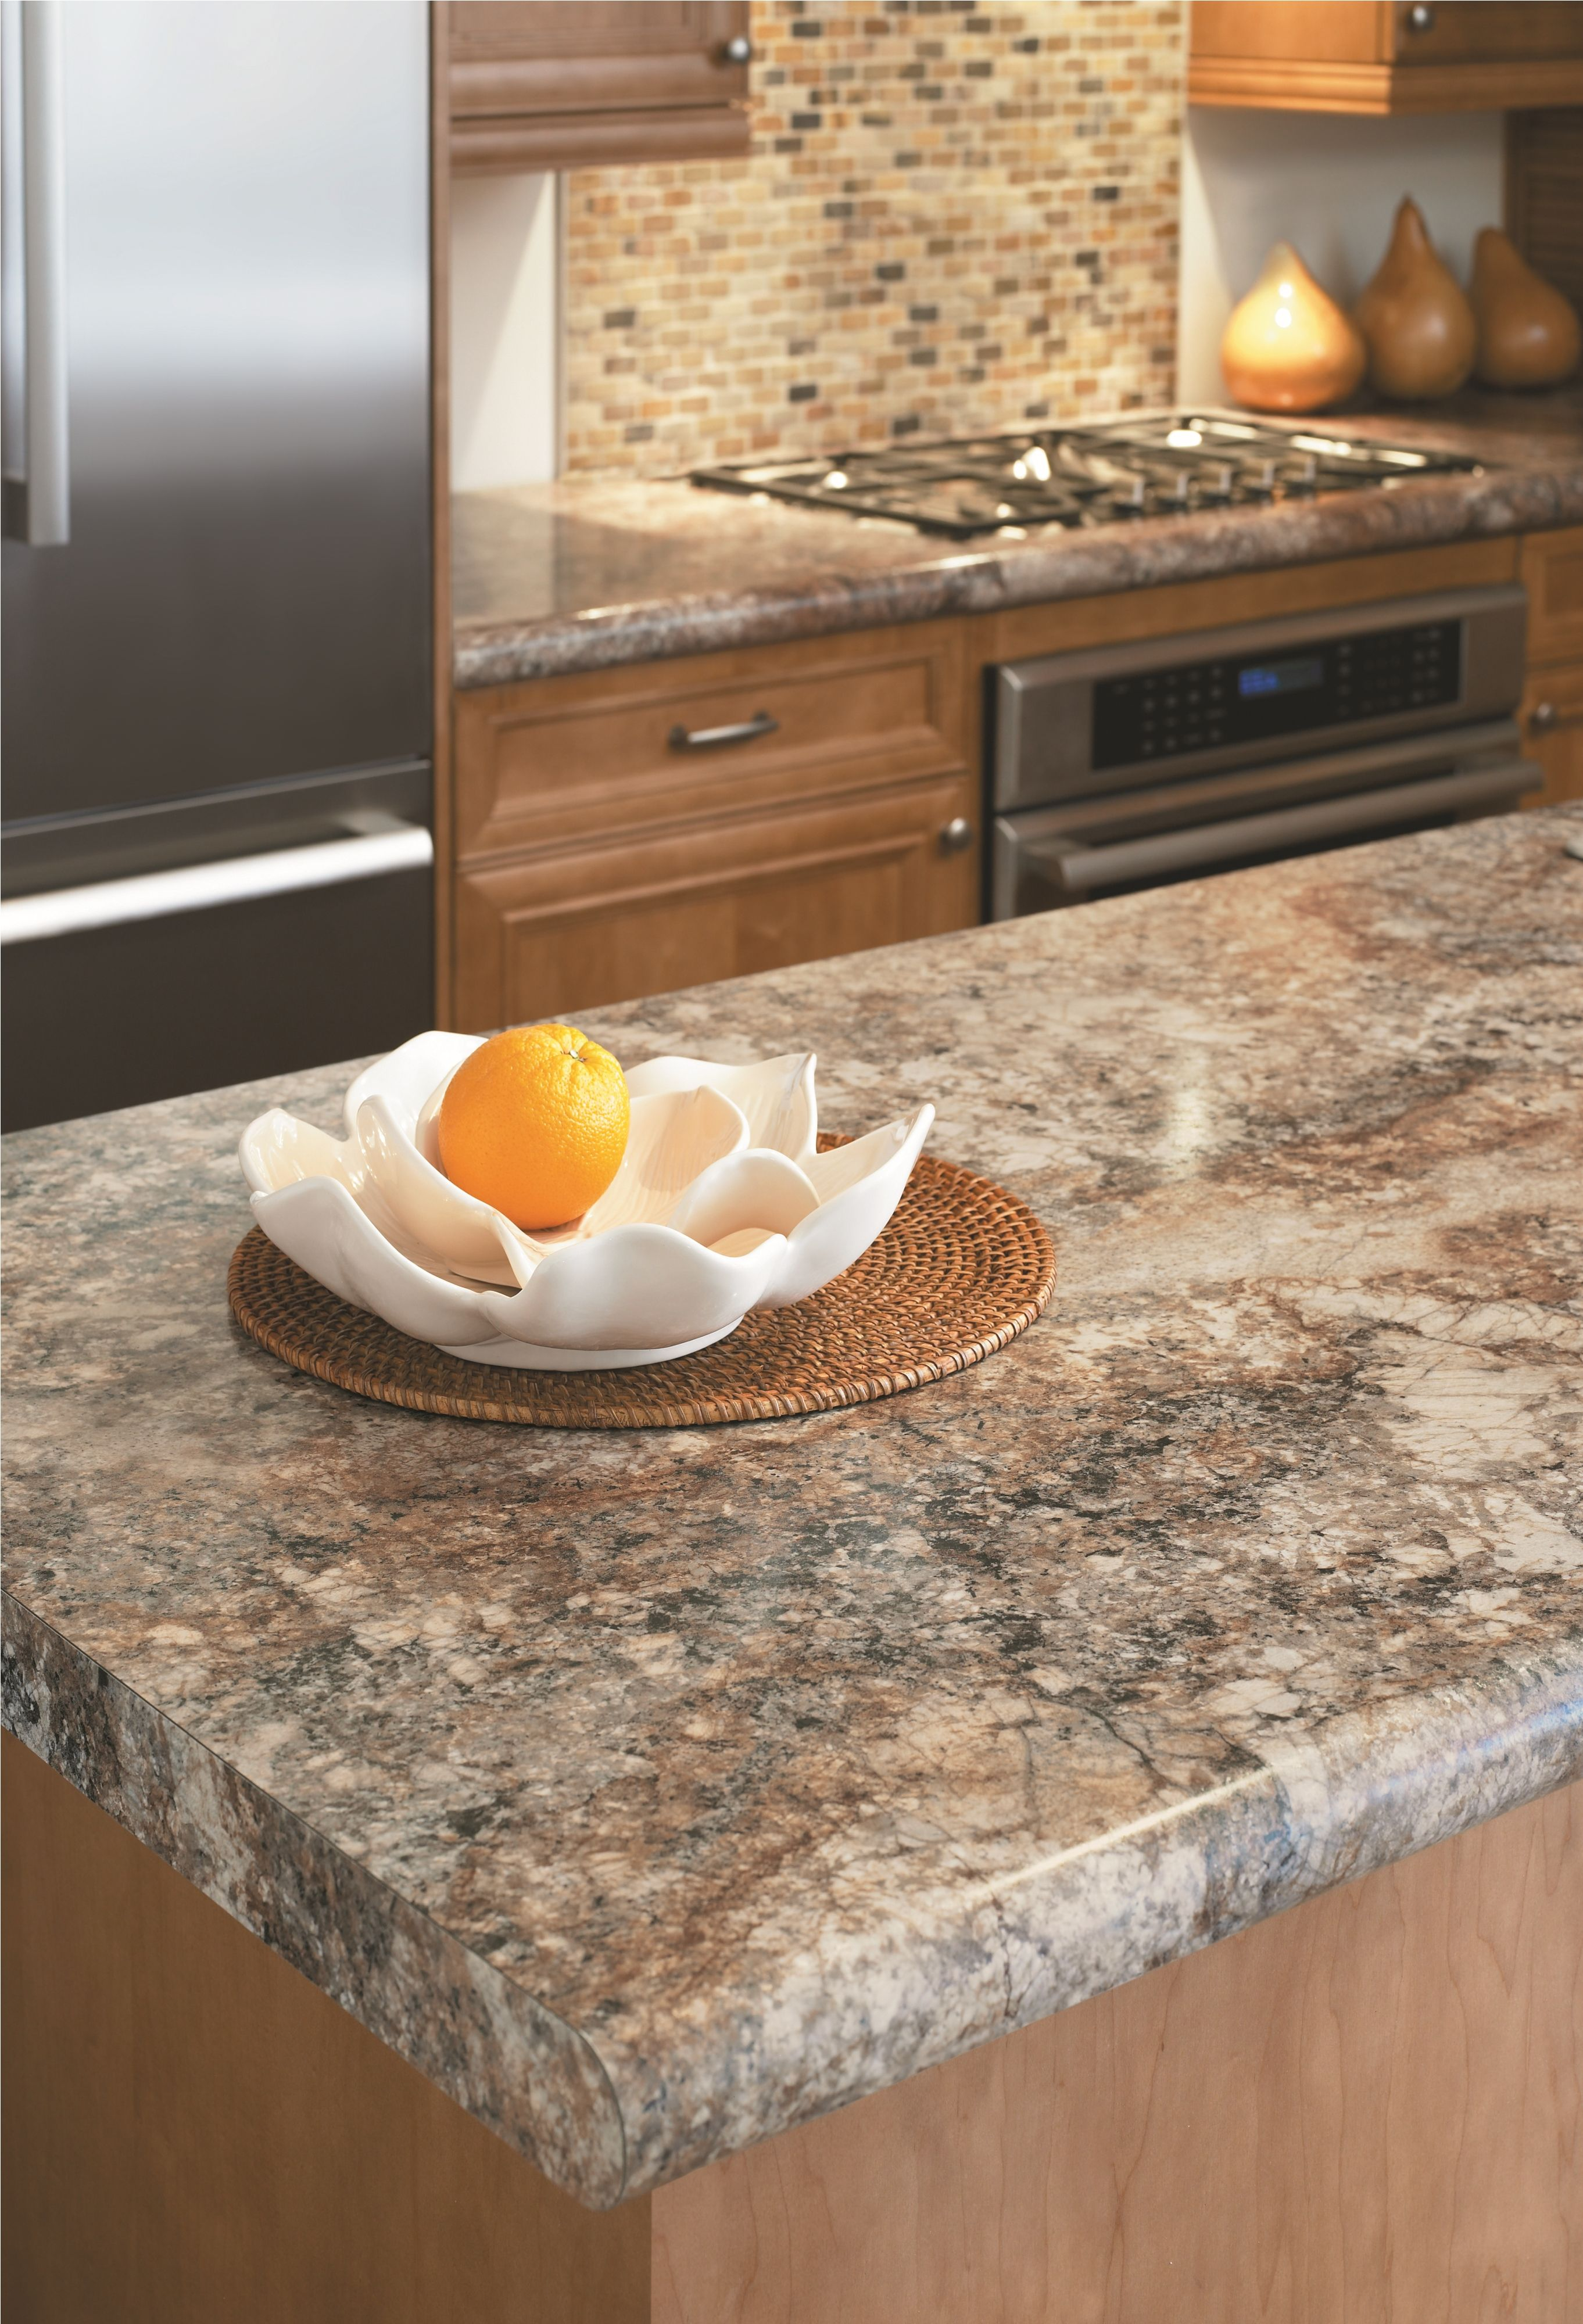 Mascarello Laminate Countertop As Temperatures Cool Down 3466 Antique Mascarello 180fx